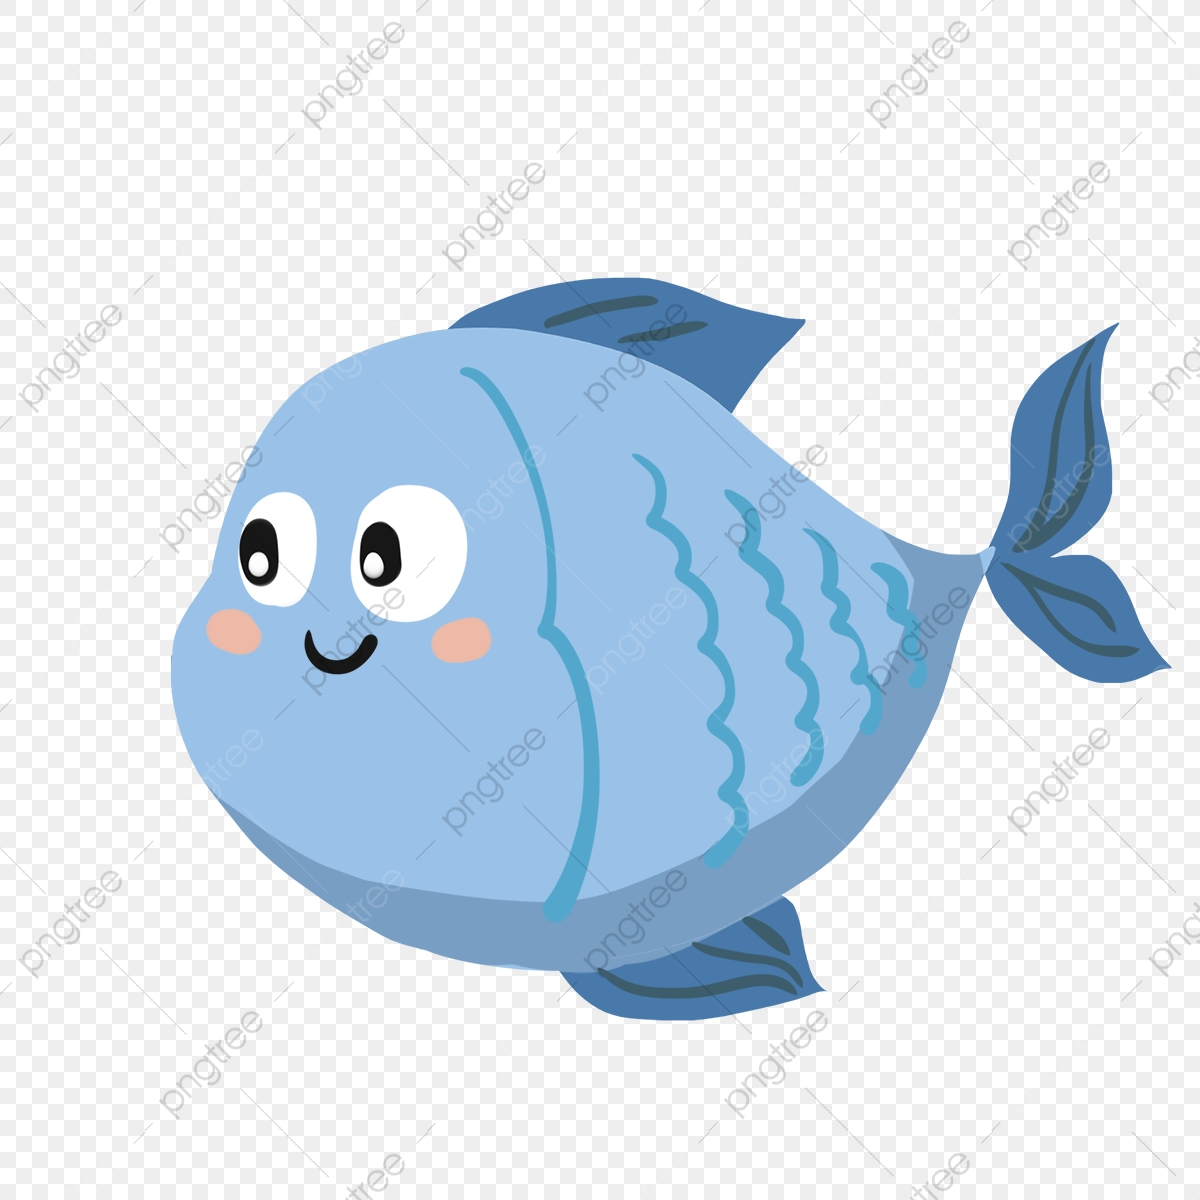 Hand Painted Cartoon Blue Fish Fish Blue Fish Cartoon Fish Png Transparent Clipart Image And Psd File For Free Download